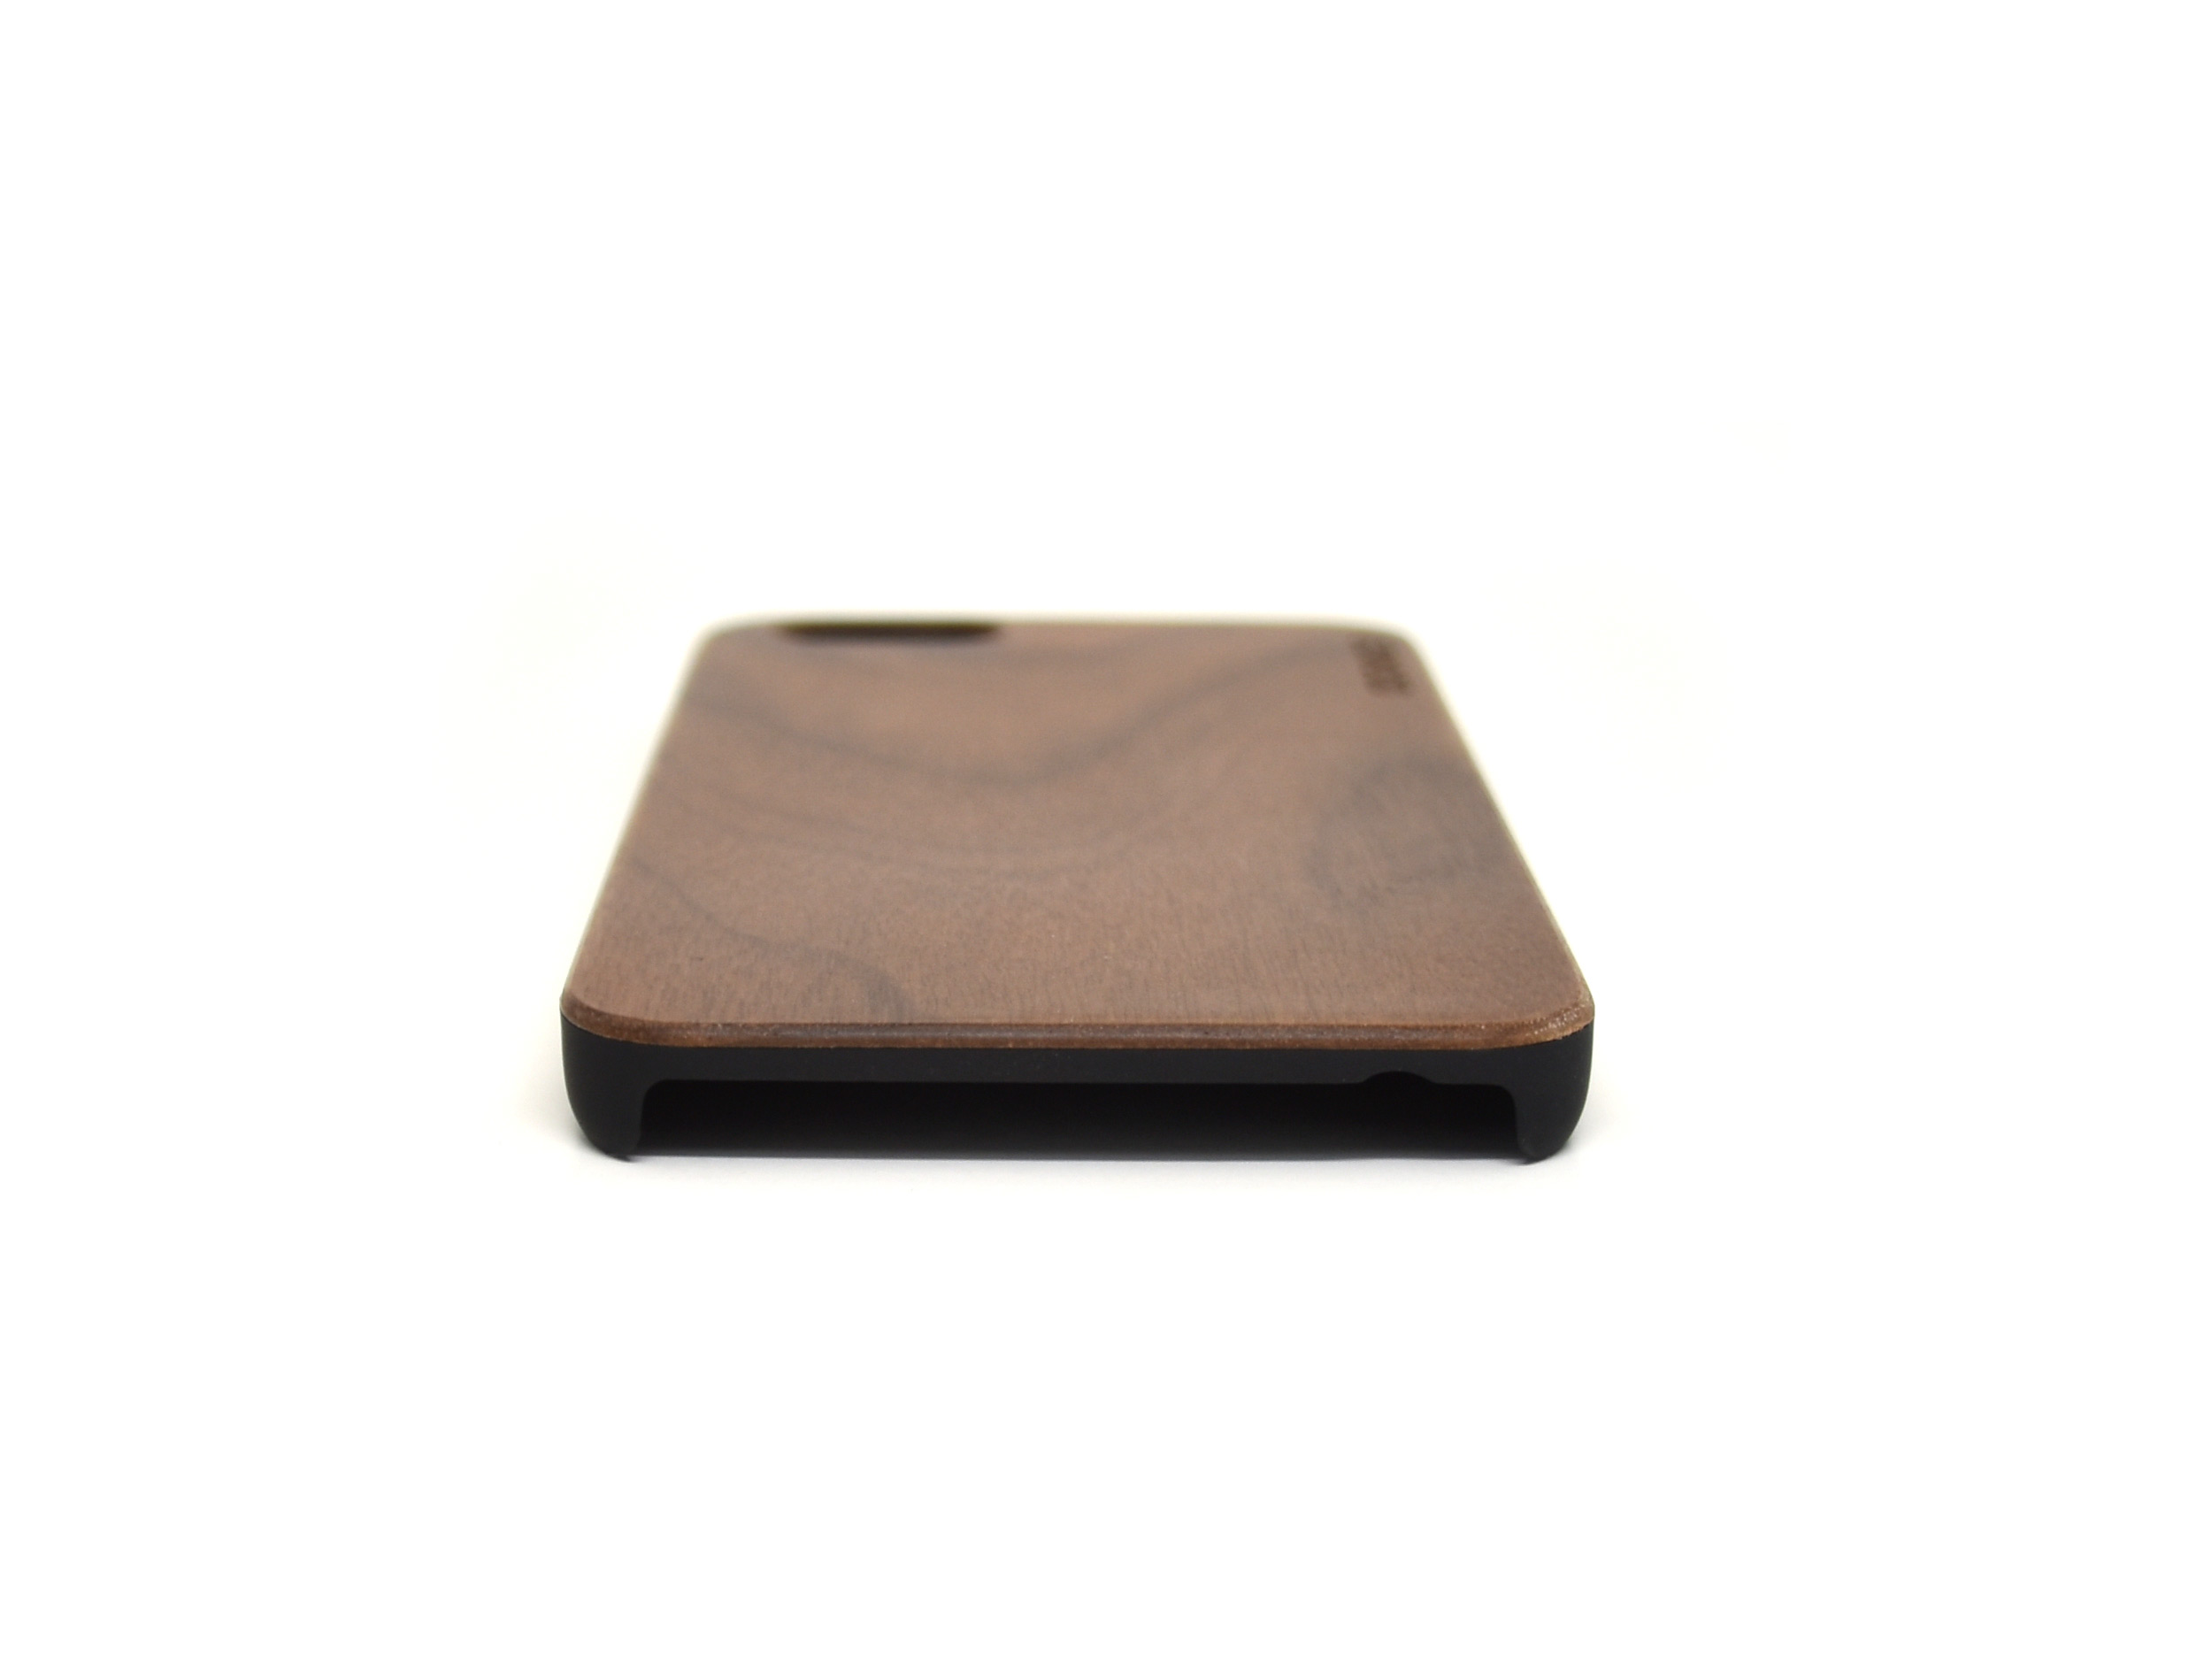 iPhone 6 case walnut wood bottom